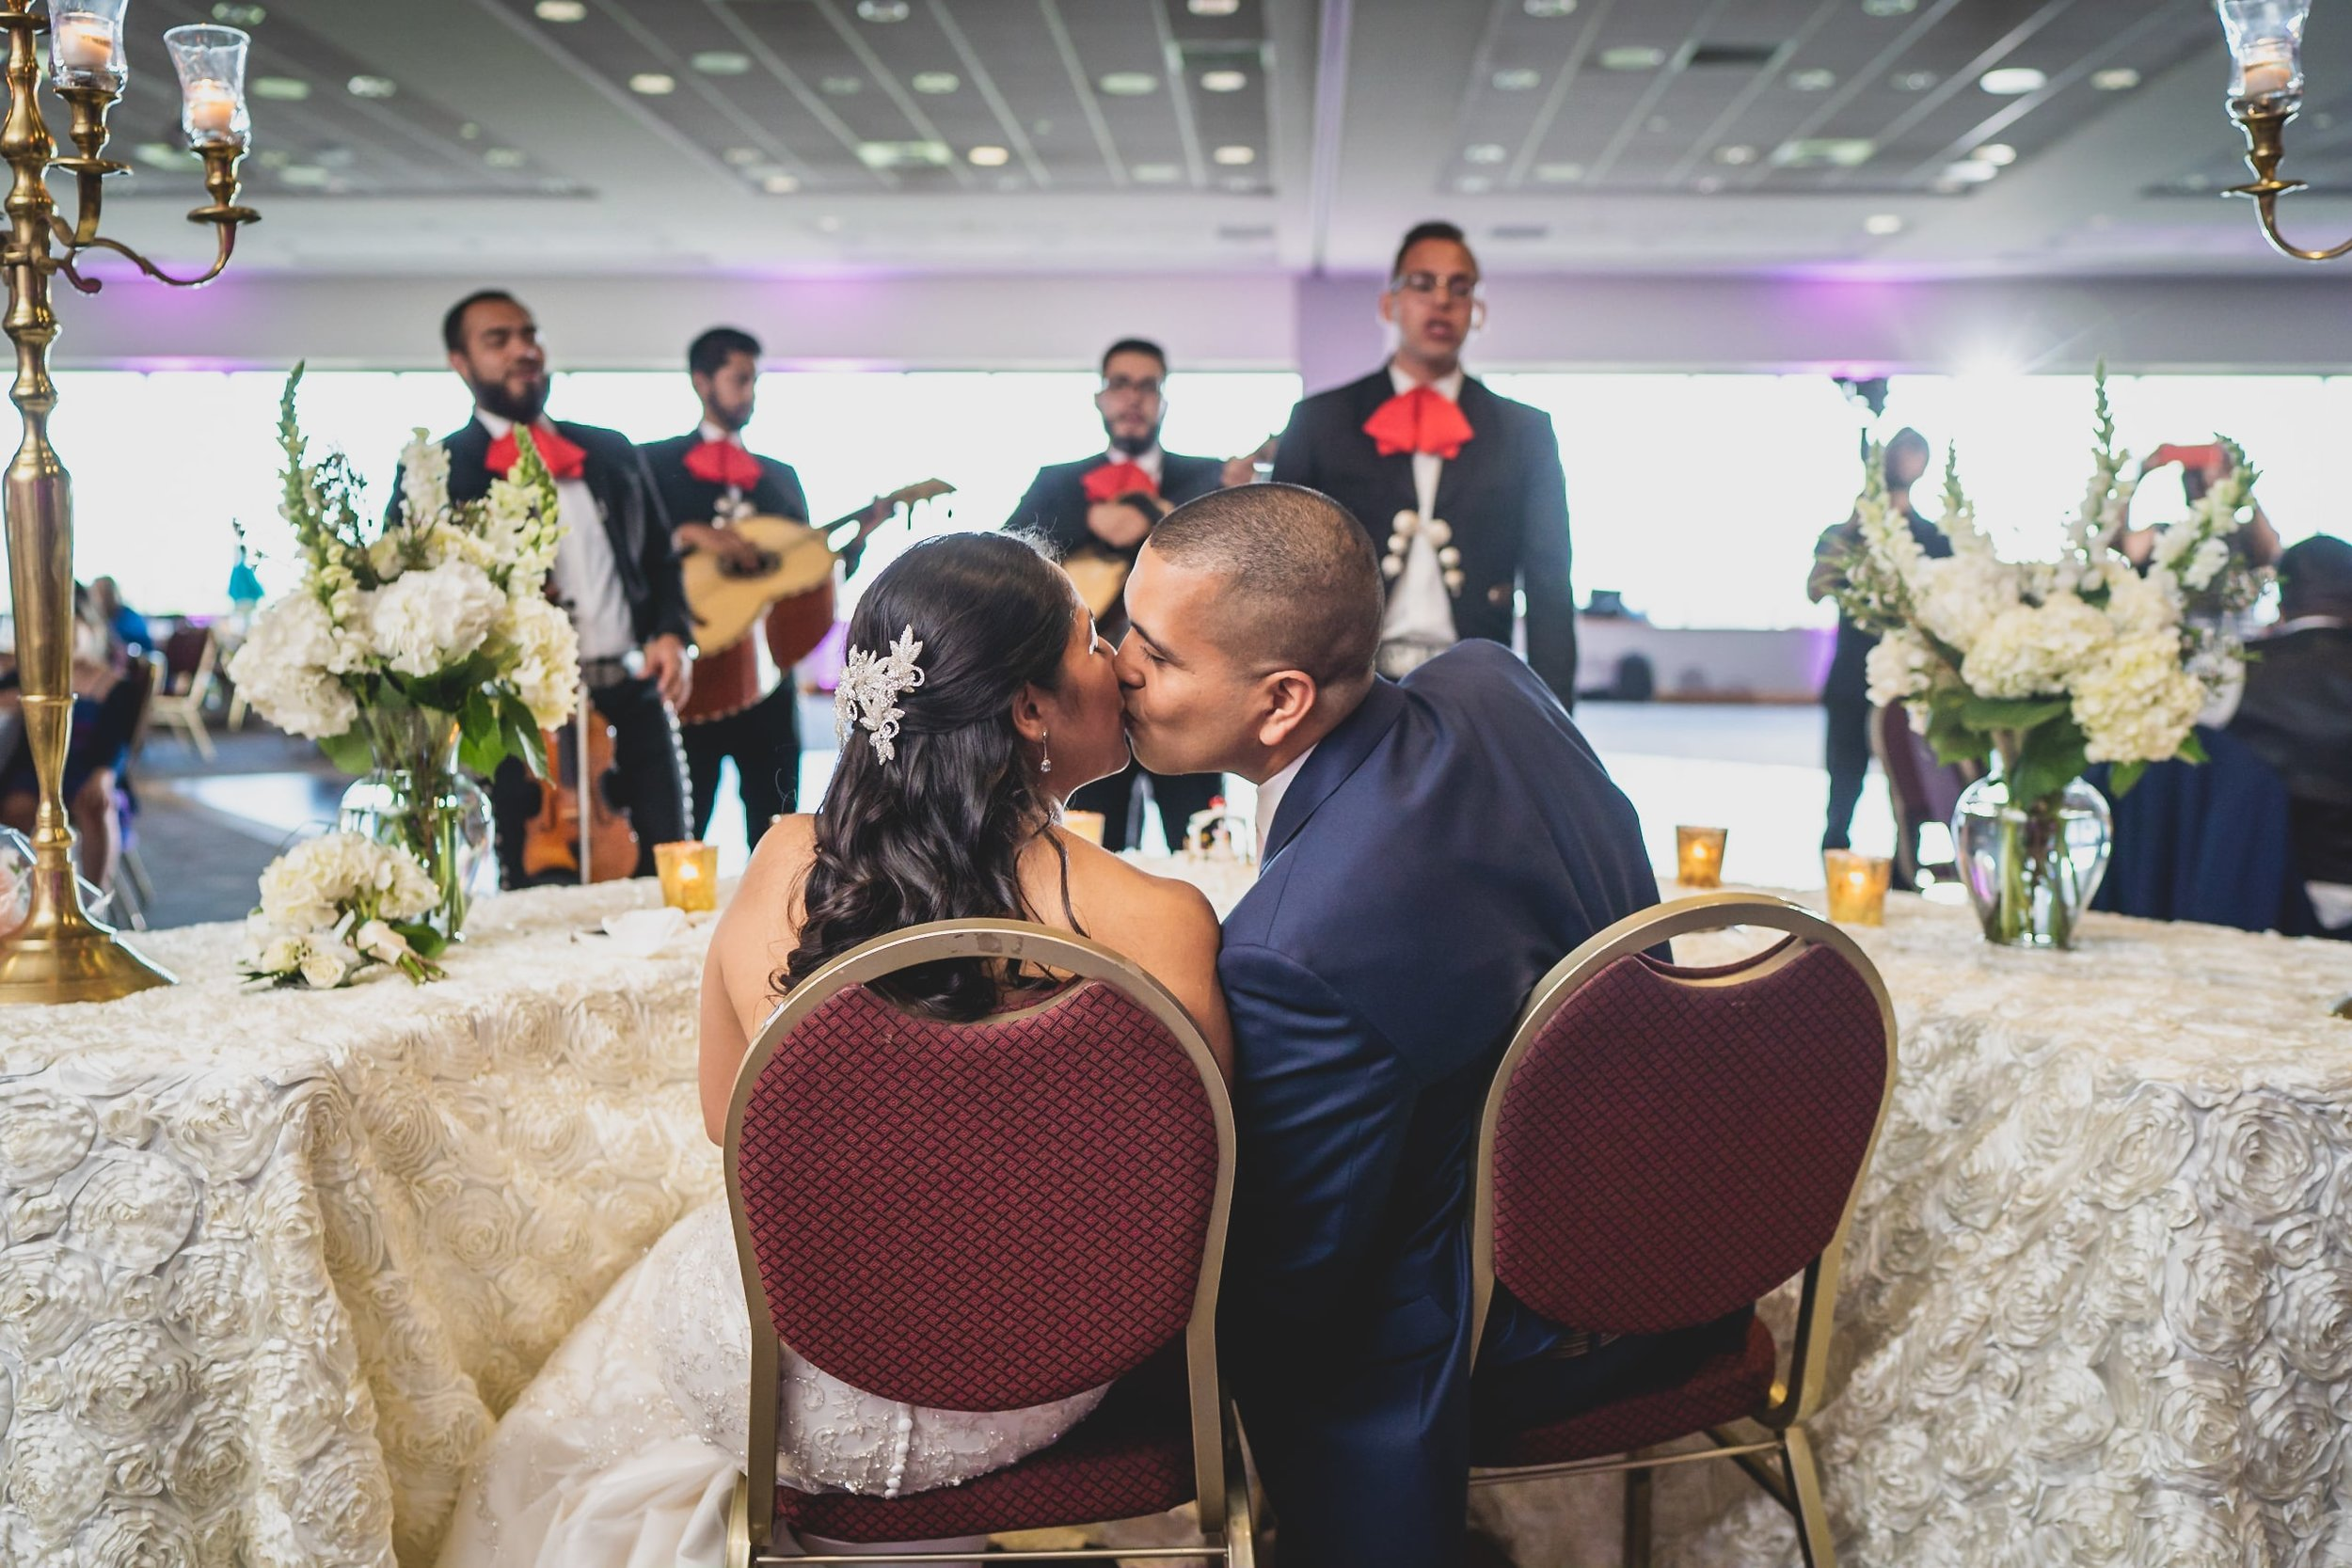 Wedding Videography - San Antonio, TX - Bride and groom kissing as a performers serenade them at the head table.